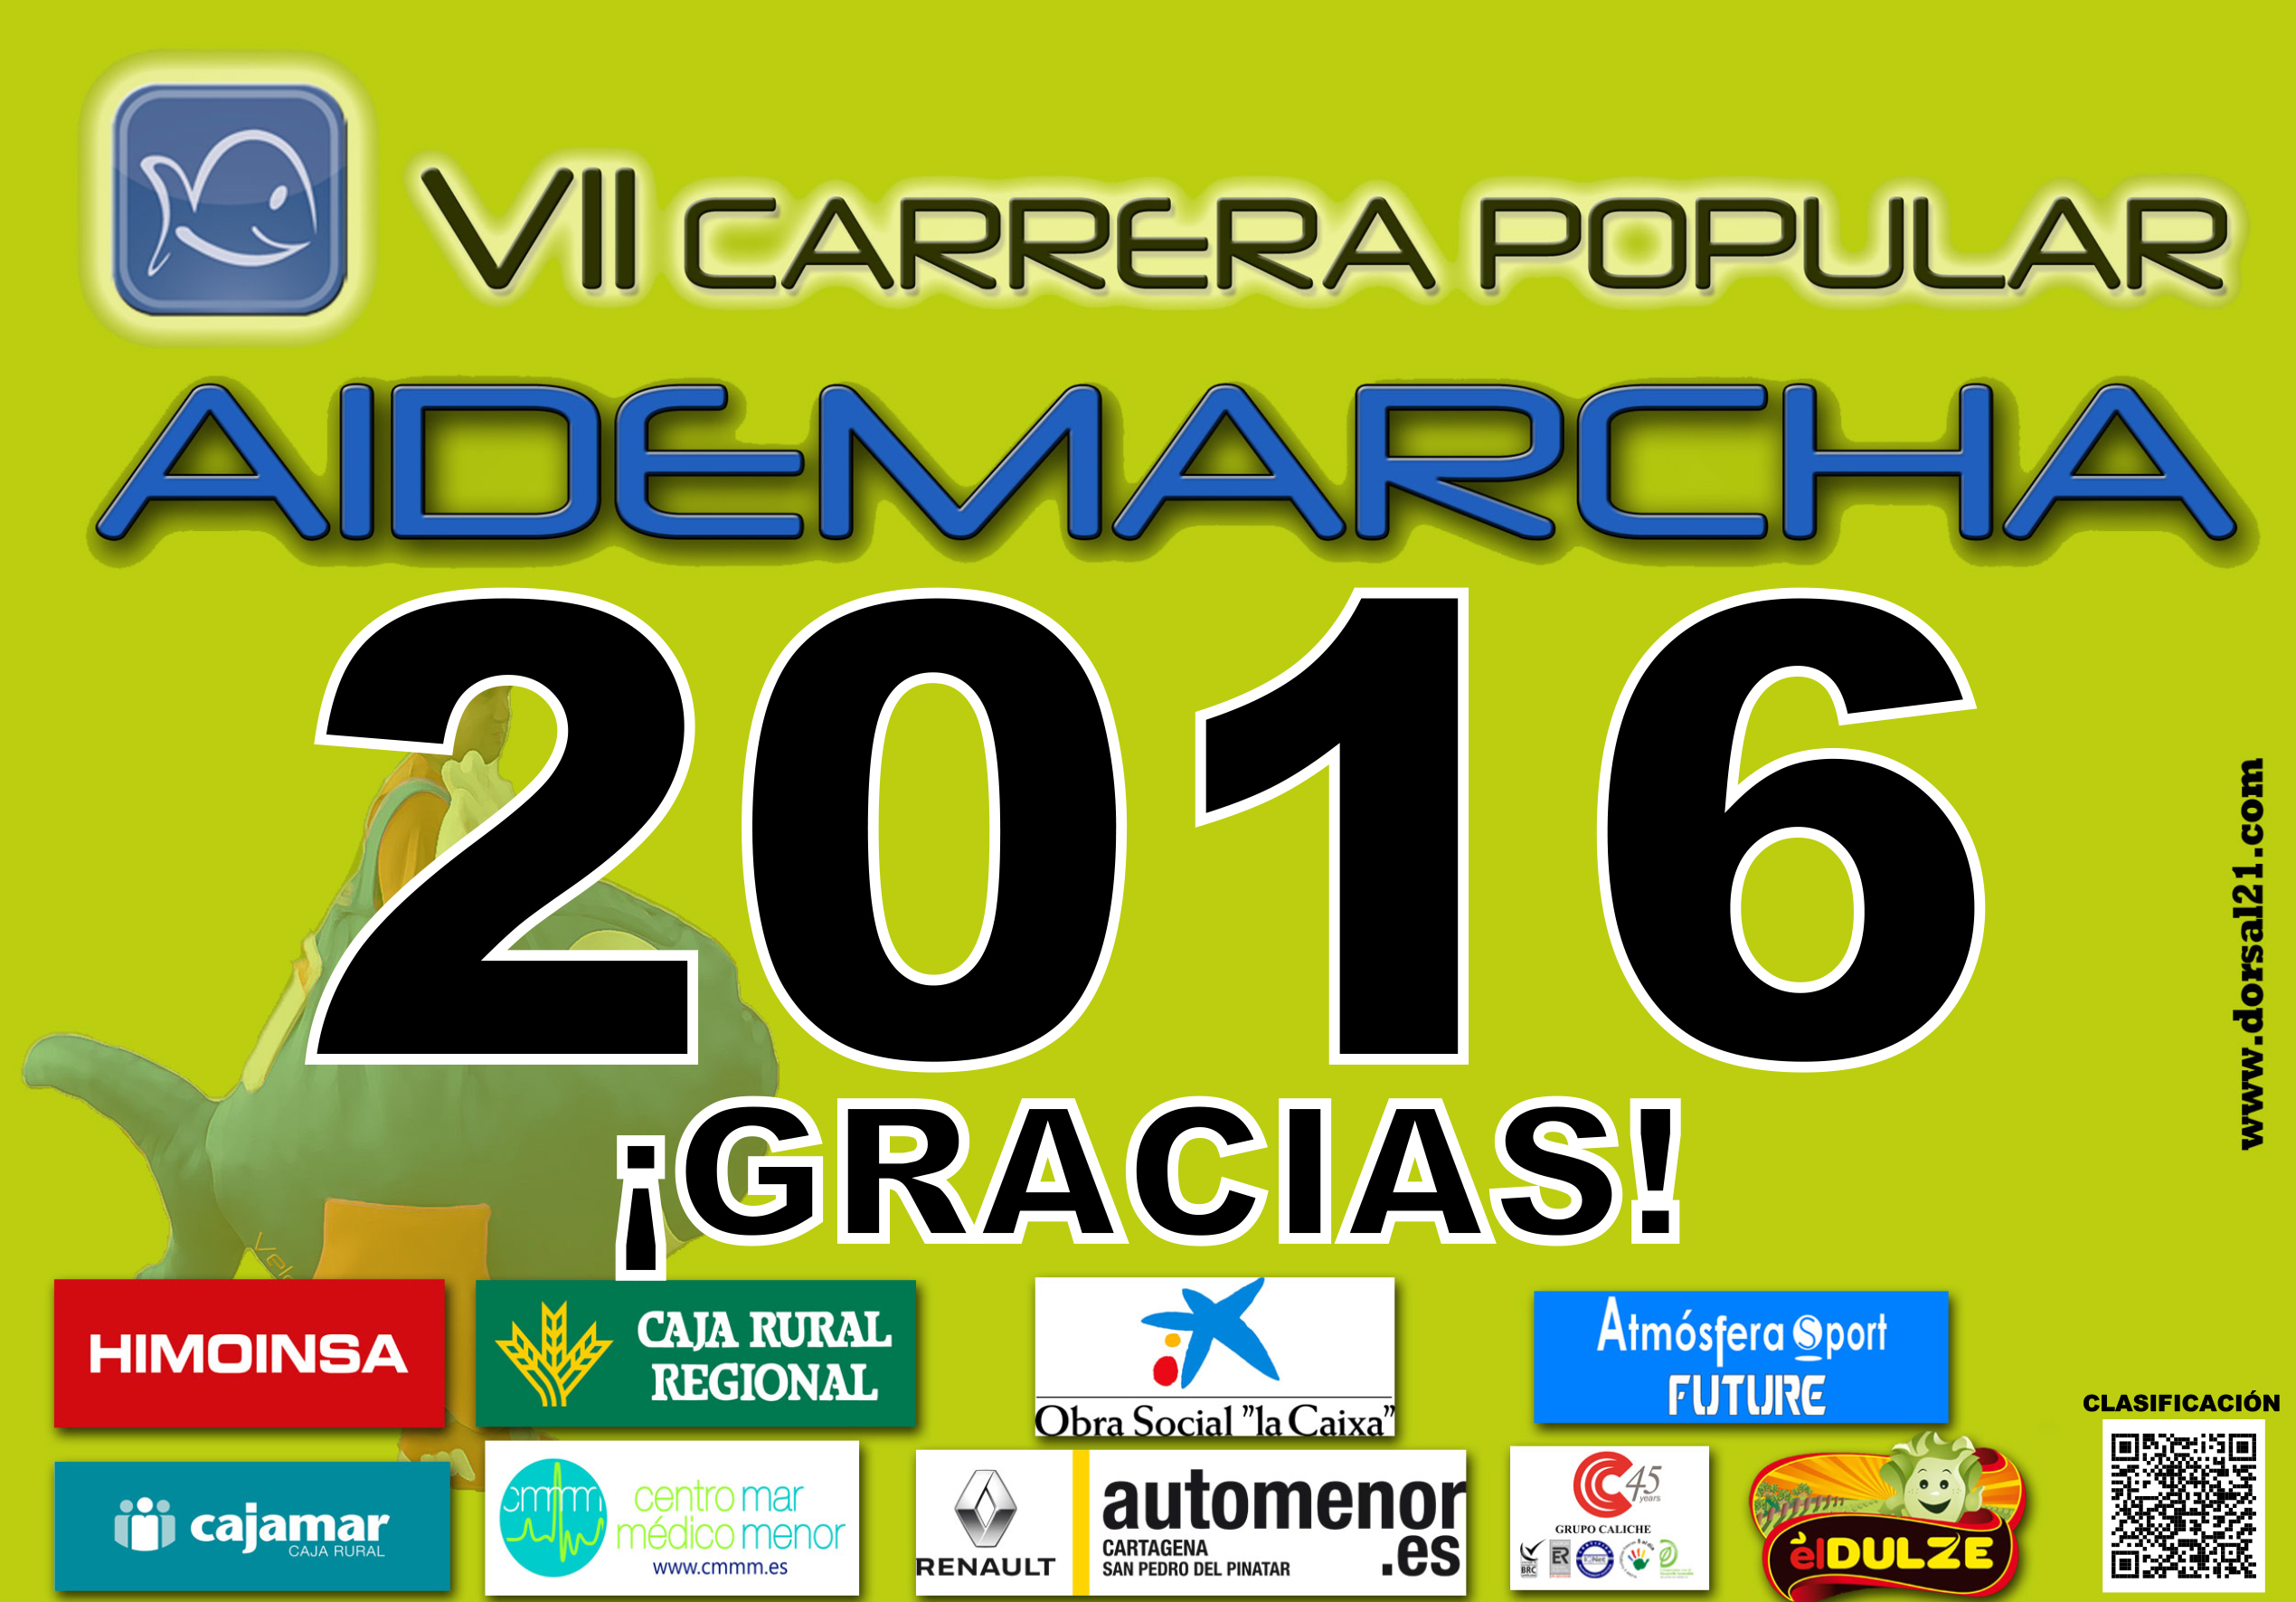 Dorsal Aidemarcha2016